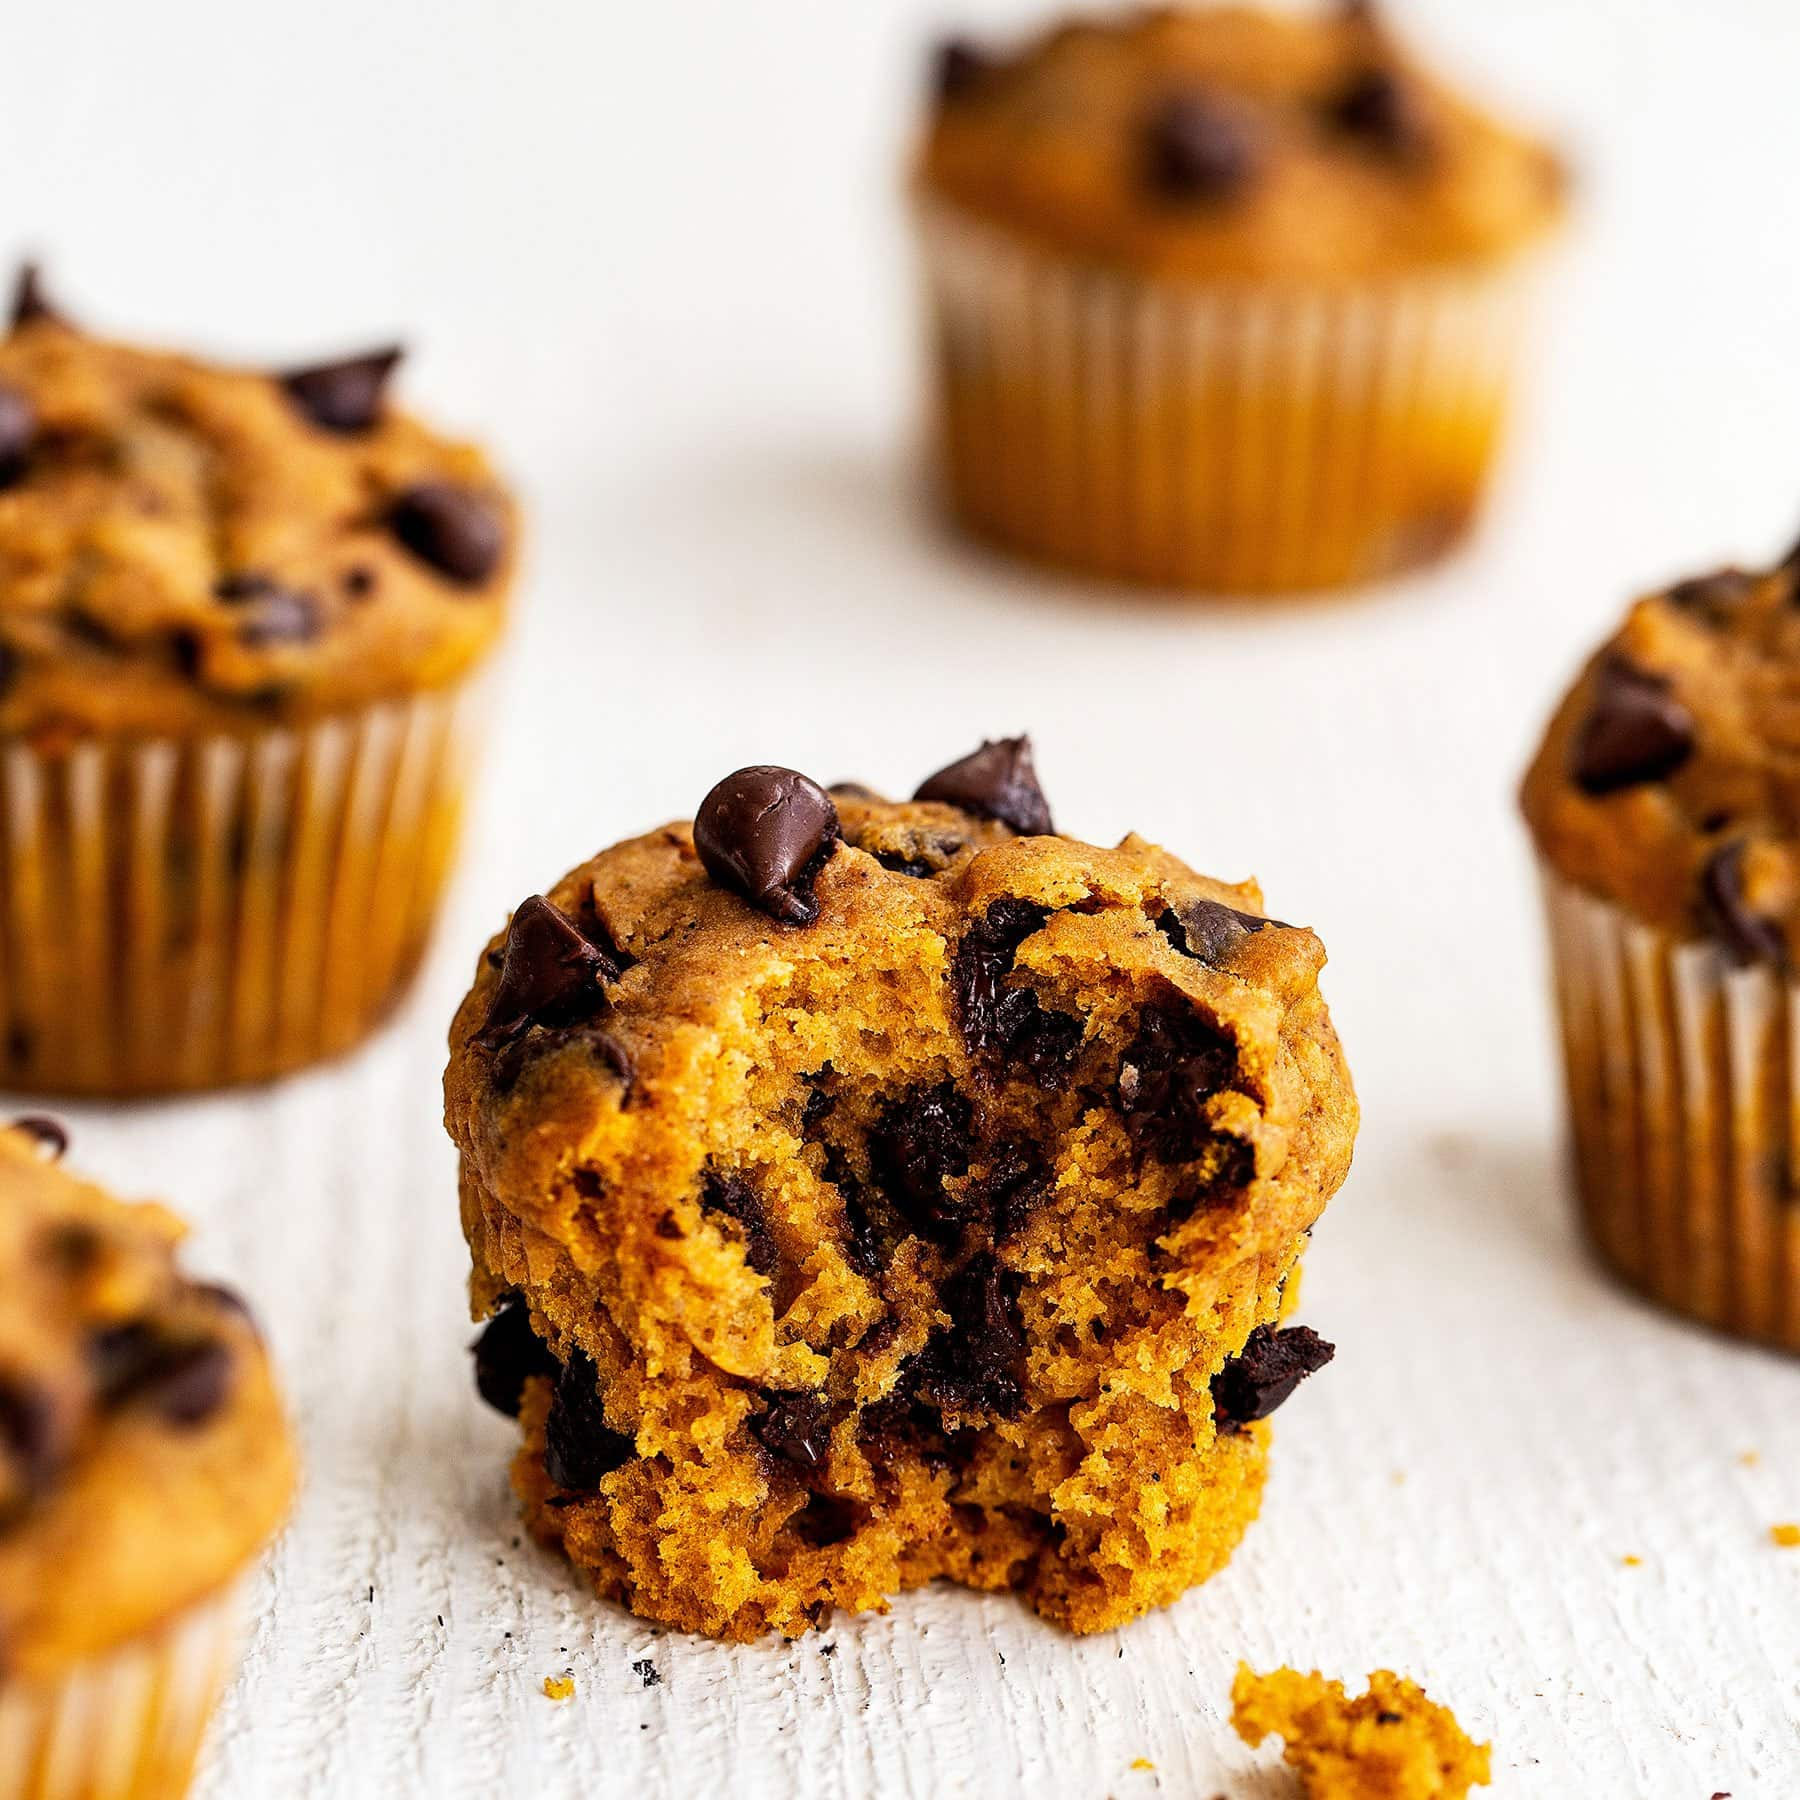 Quick and easy pumpkin chocolate chip muffins with a bite taken out